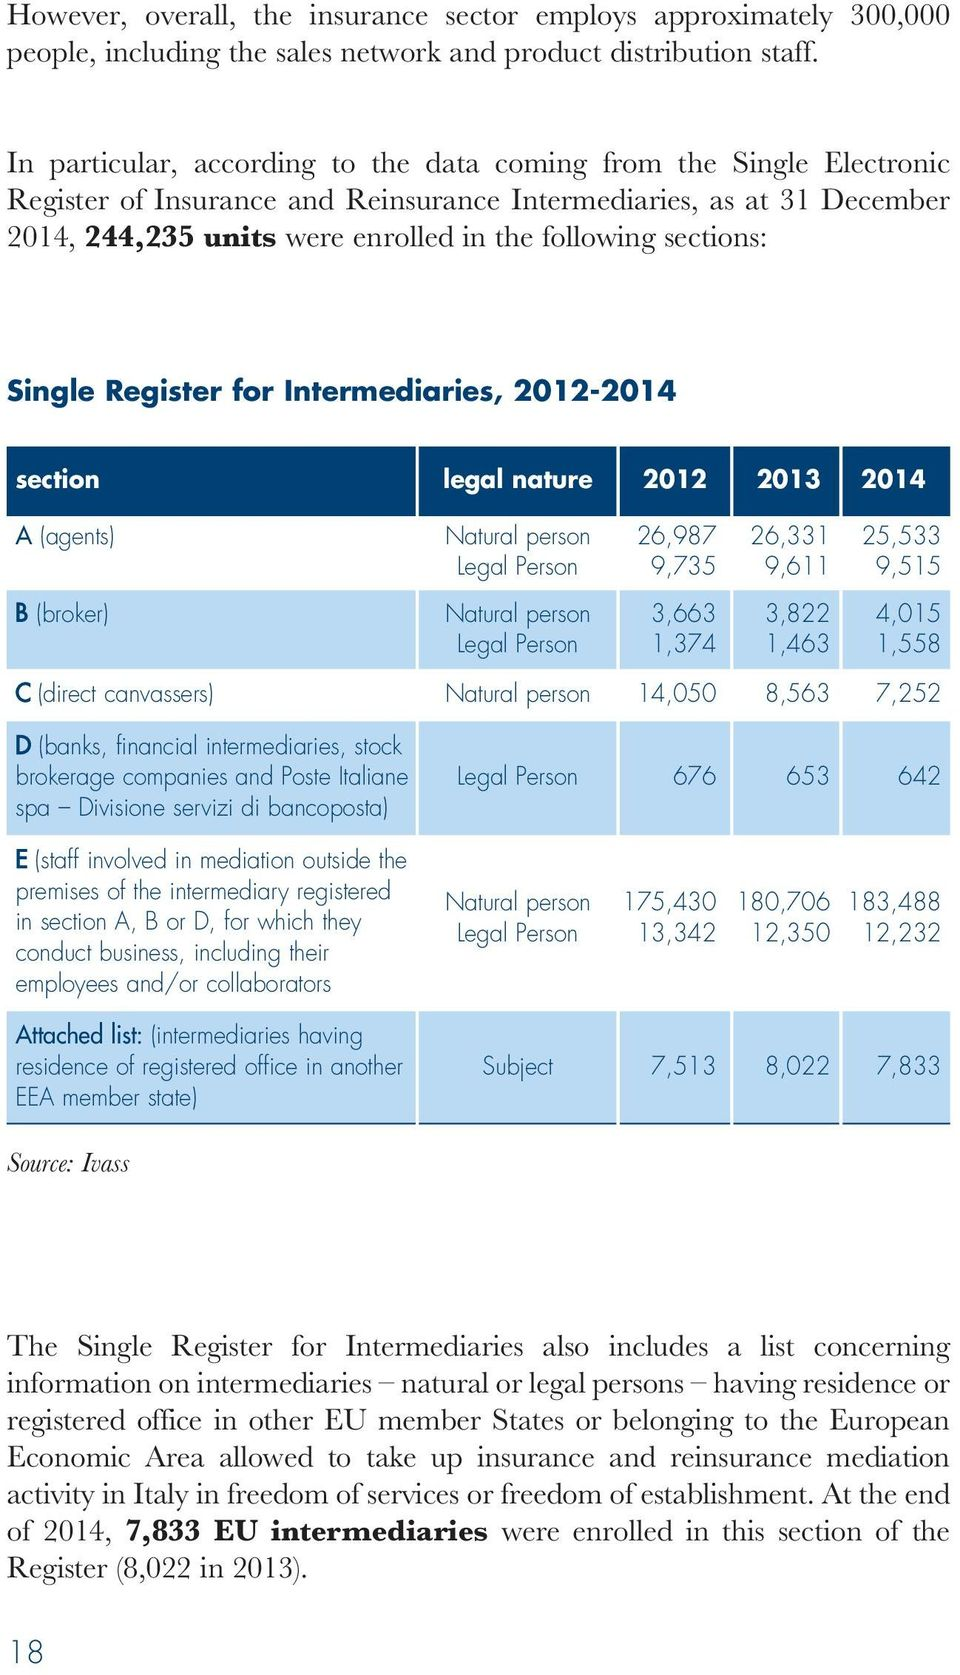 sections: Single Register for Intermediaries, 2012-2014 section legal nature 2012 2013 2014 A (agents) Natural person 26,987 26,331 25,533 Legal Person 9,735 9,611 9,515 B (broker) Natural person